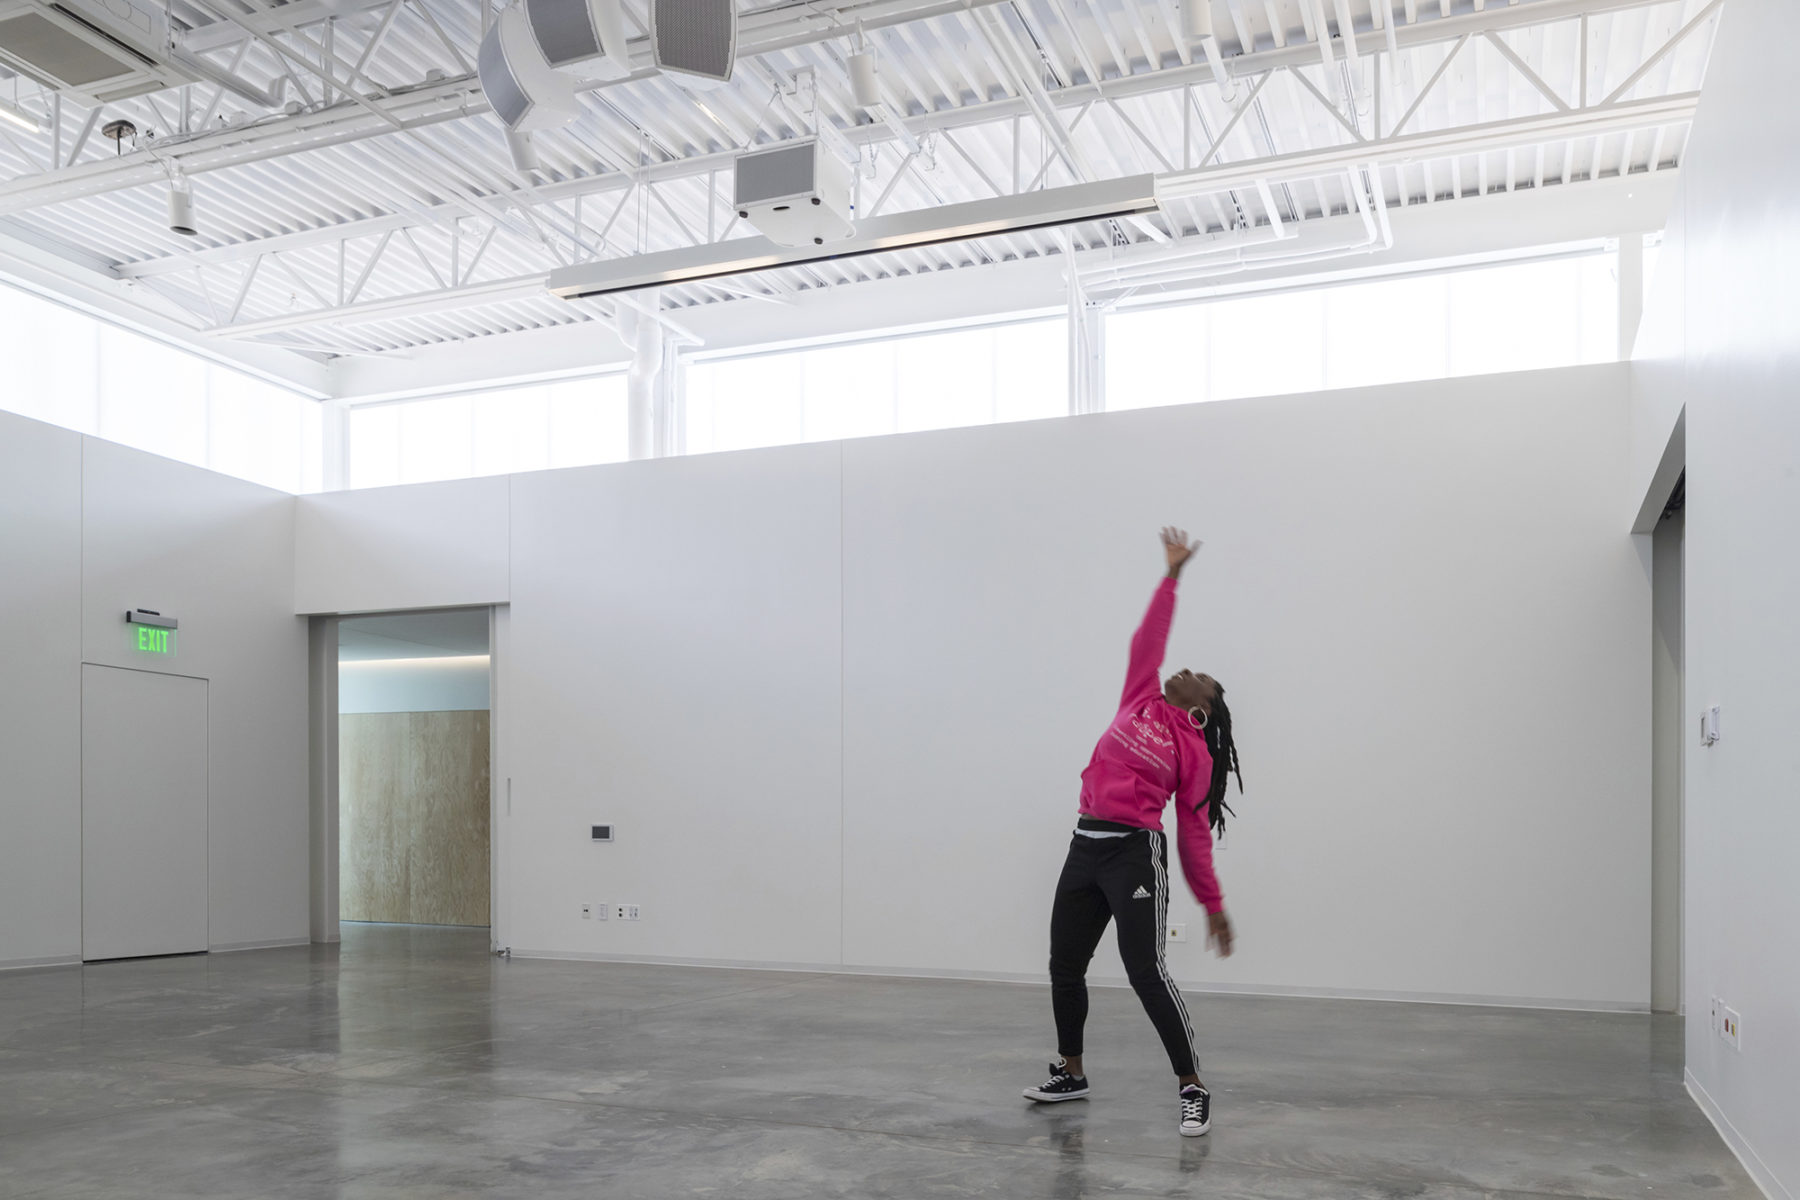 A performer showcases her talent in one of the gallery spaces